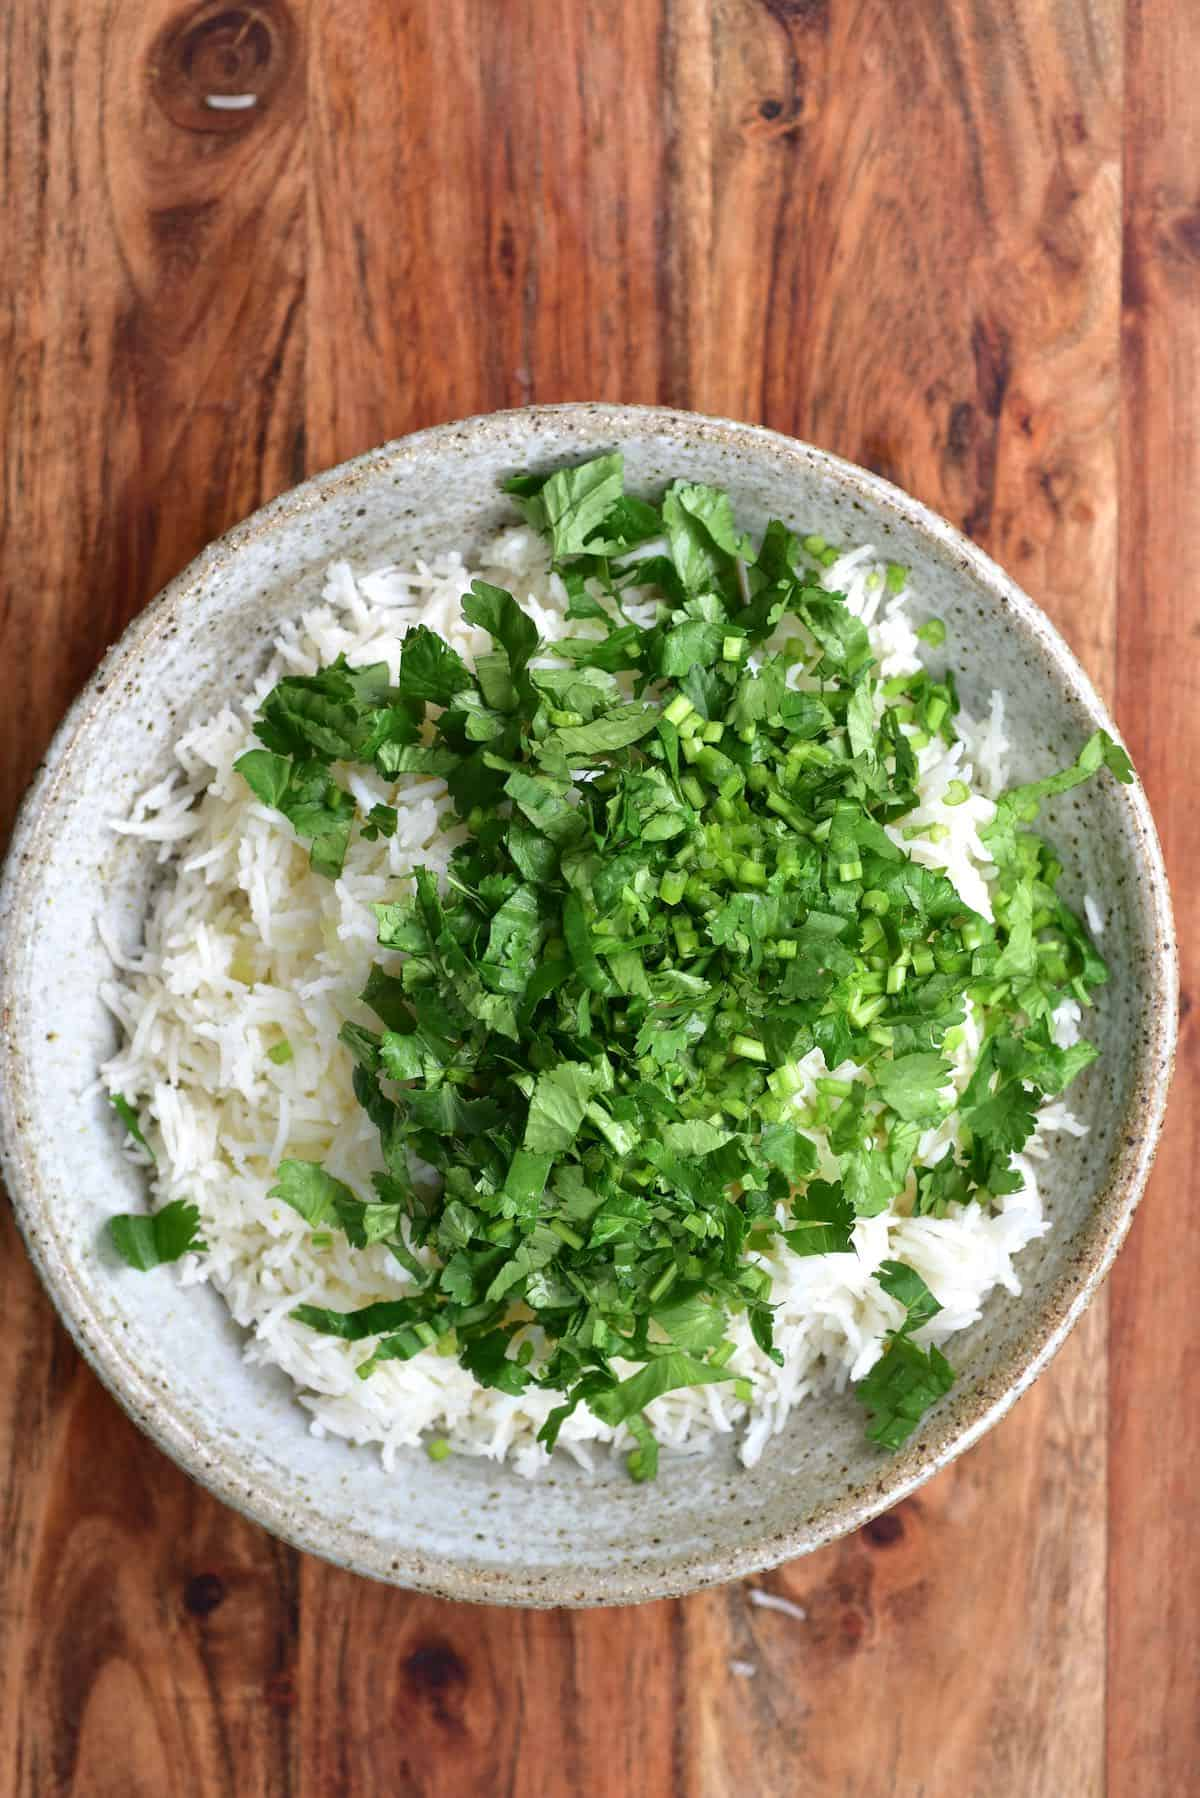 A bowl of basmati rice and chopped cilantro